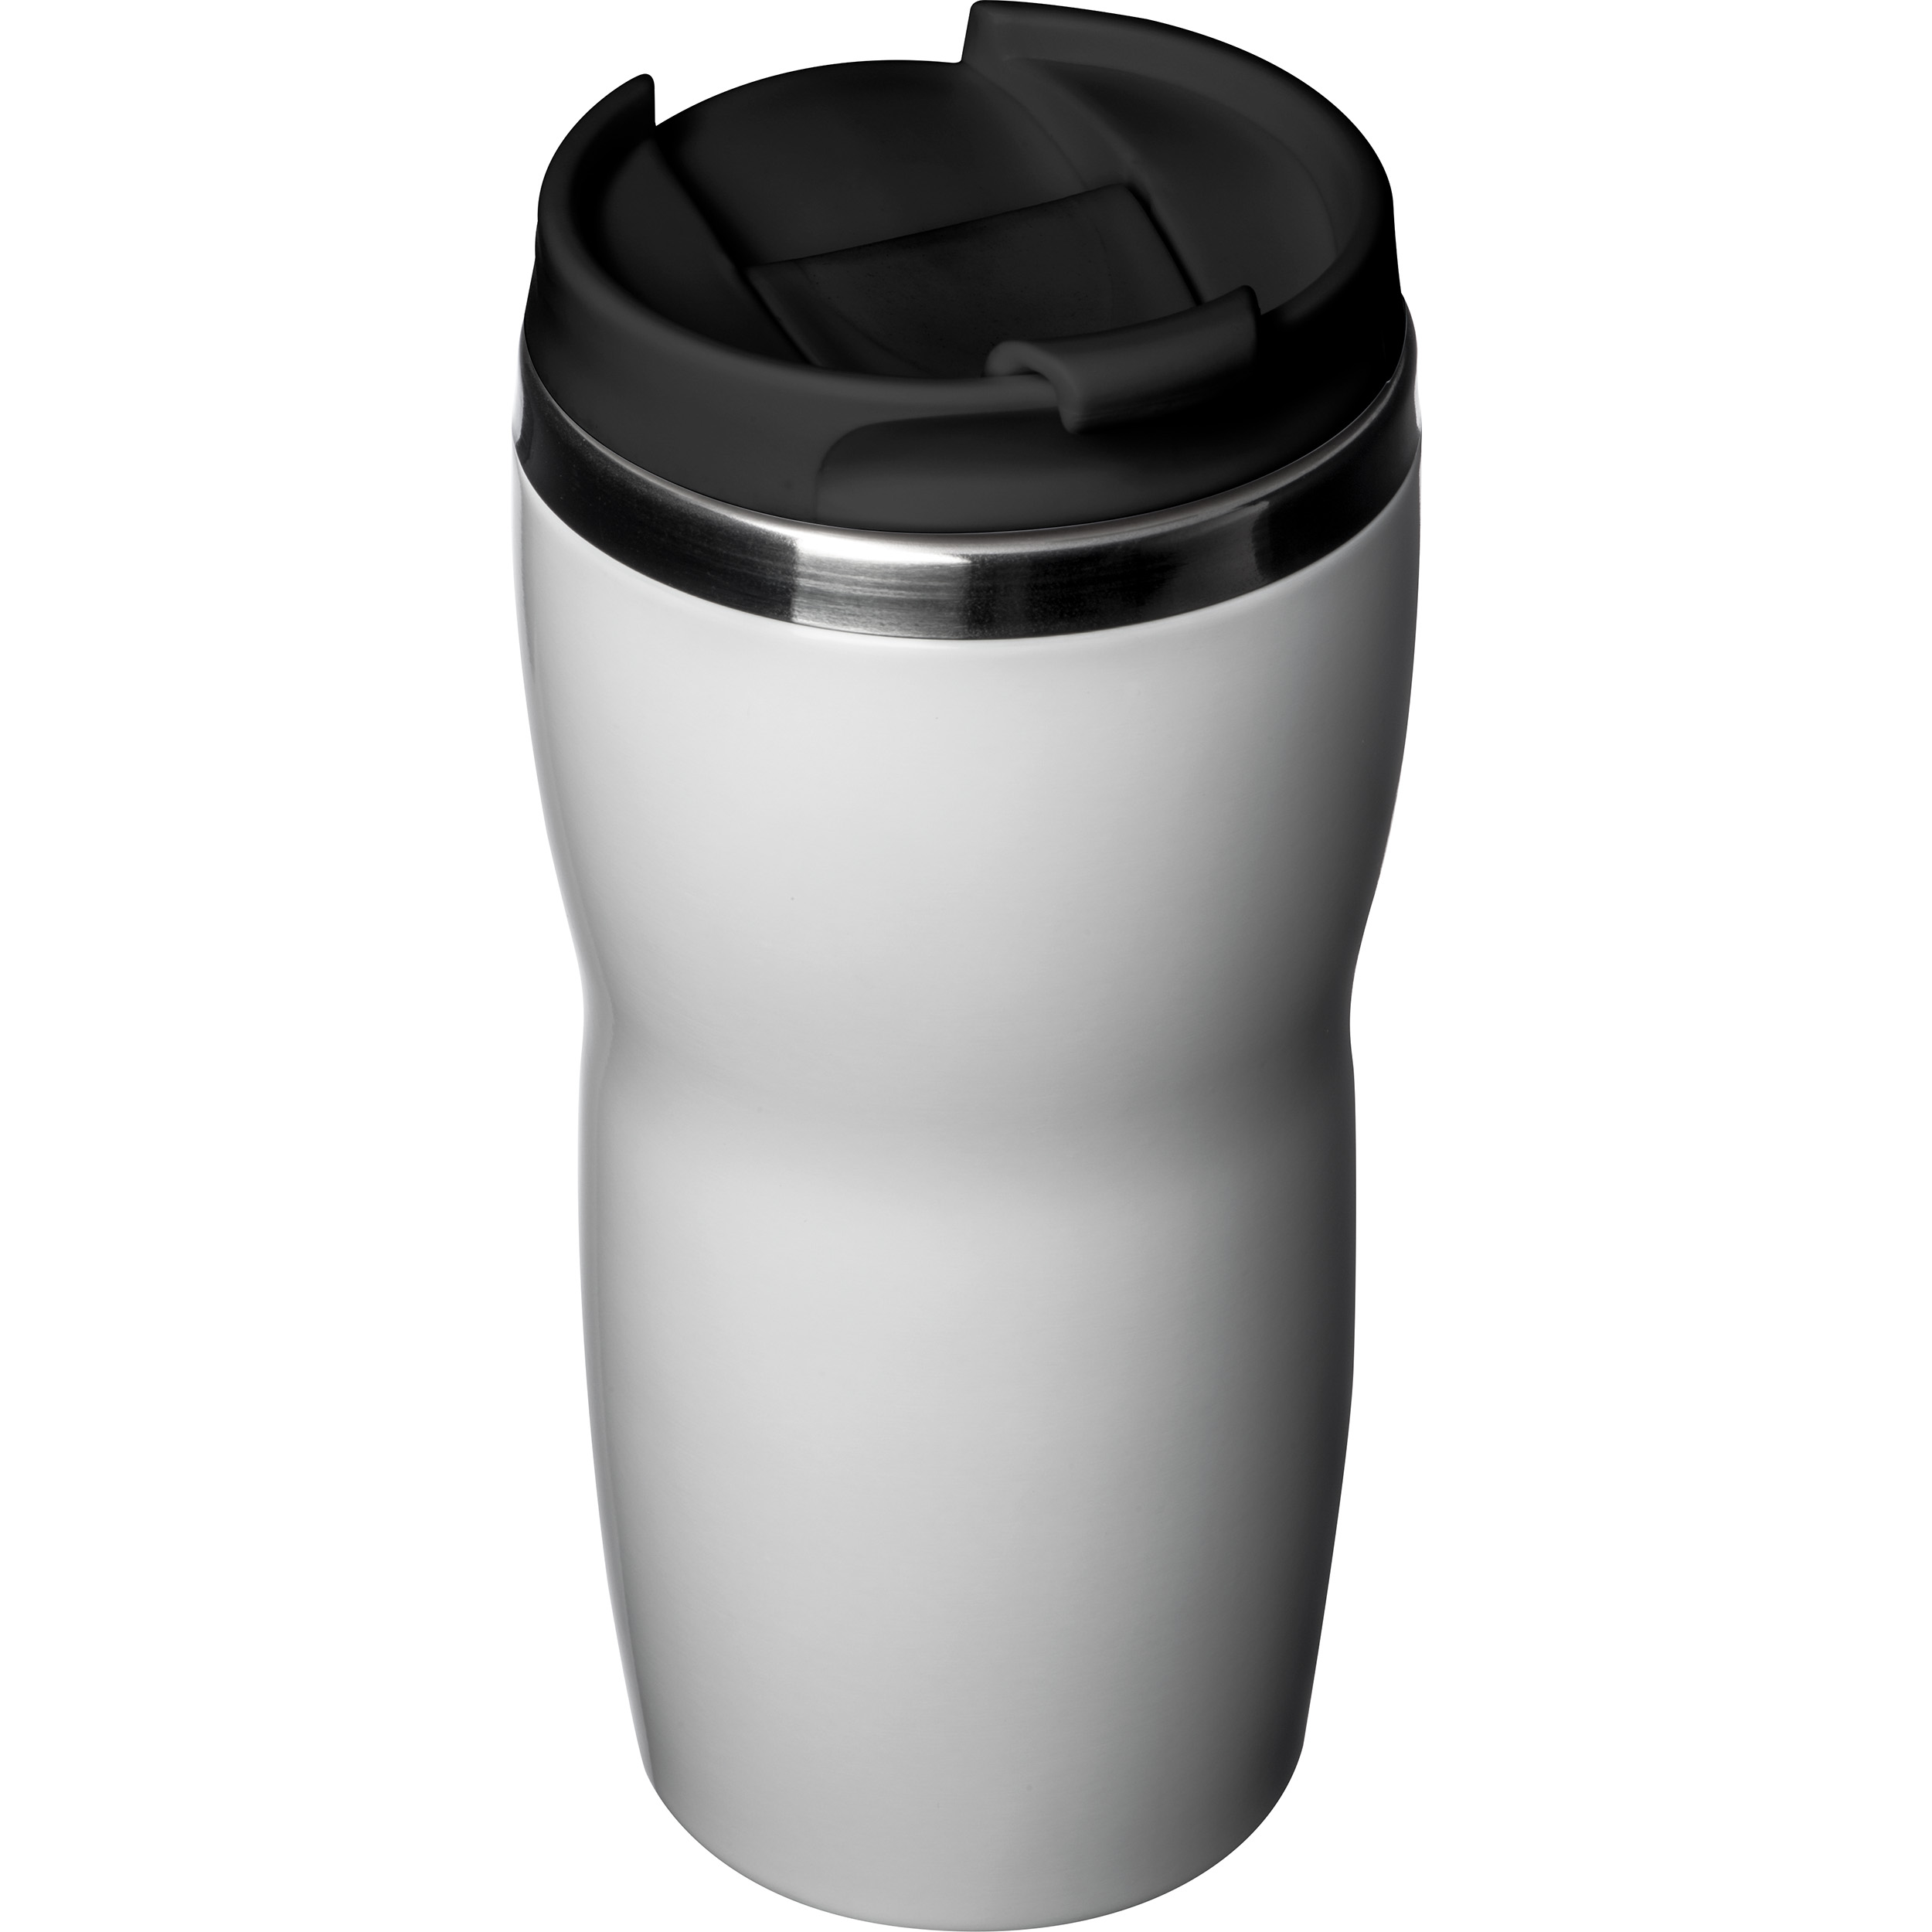 Double wall stainless steel drinking bottle